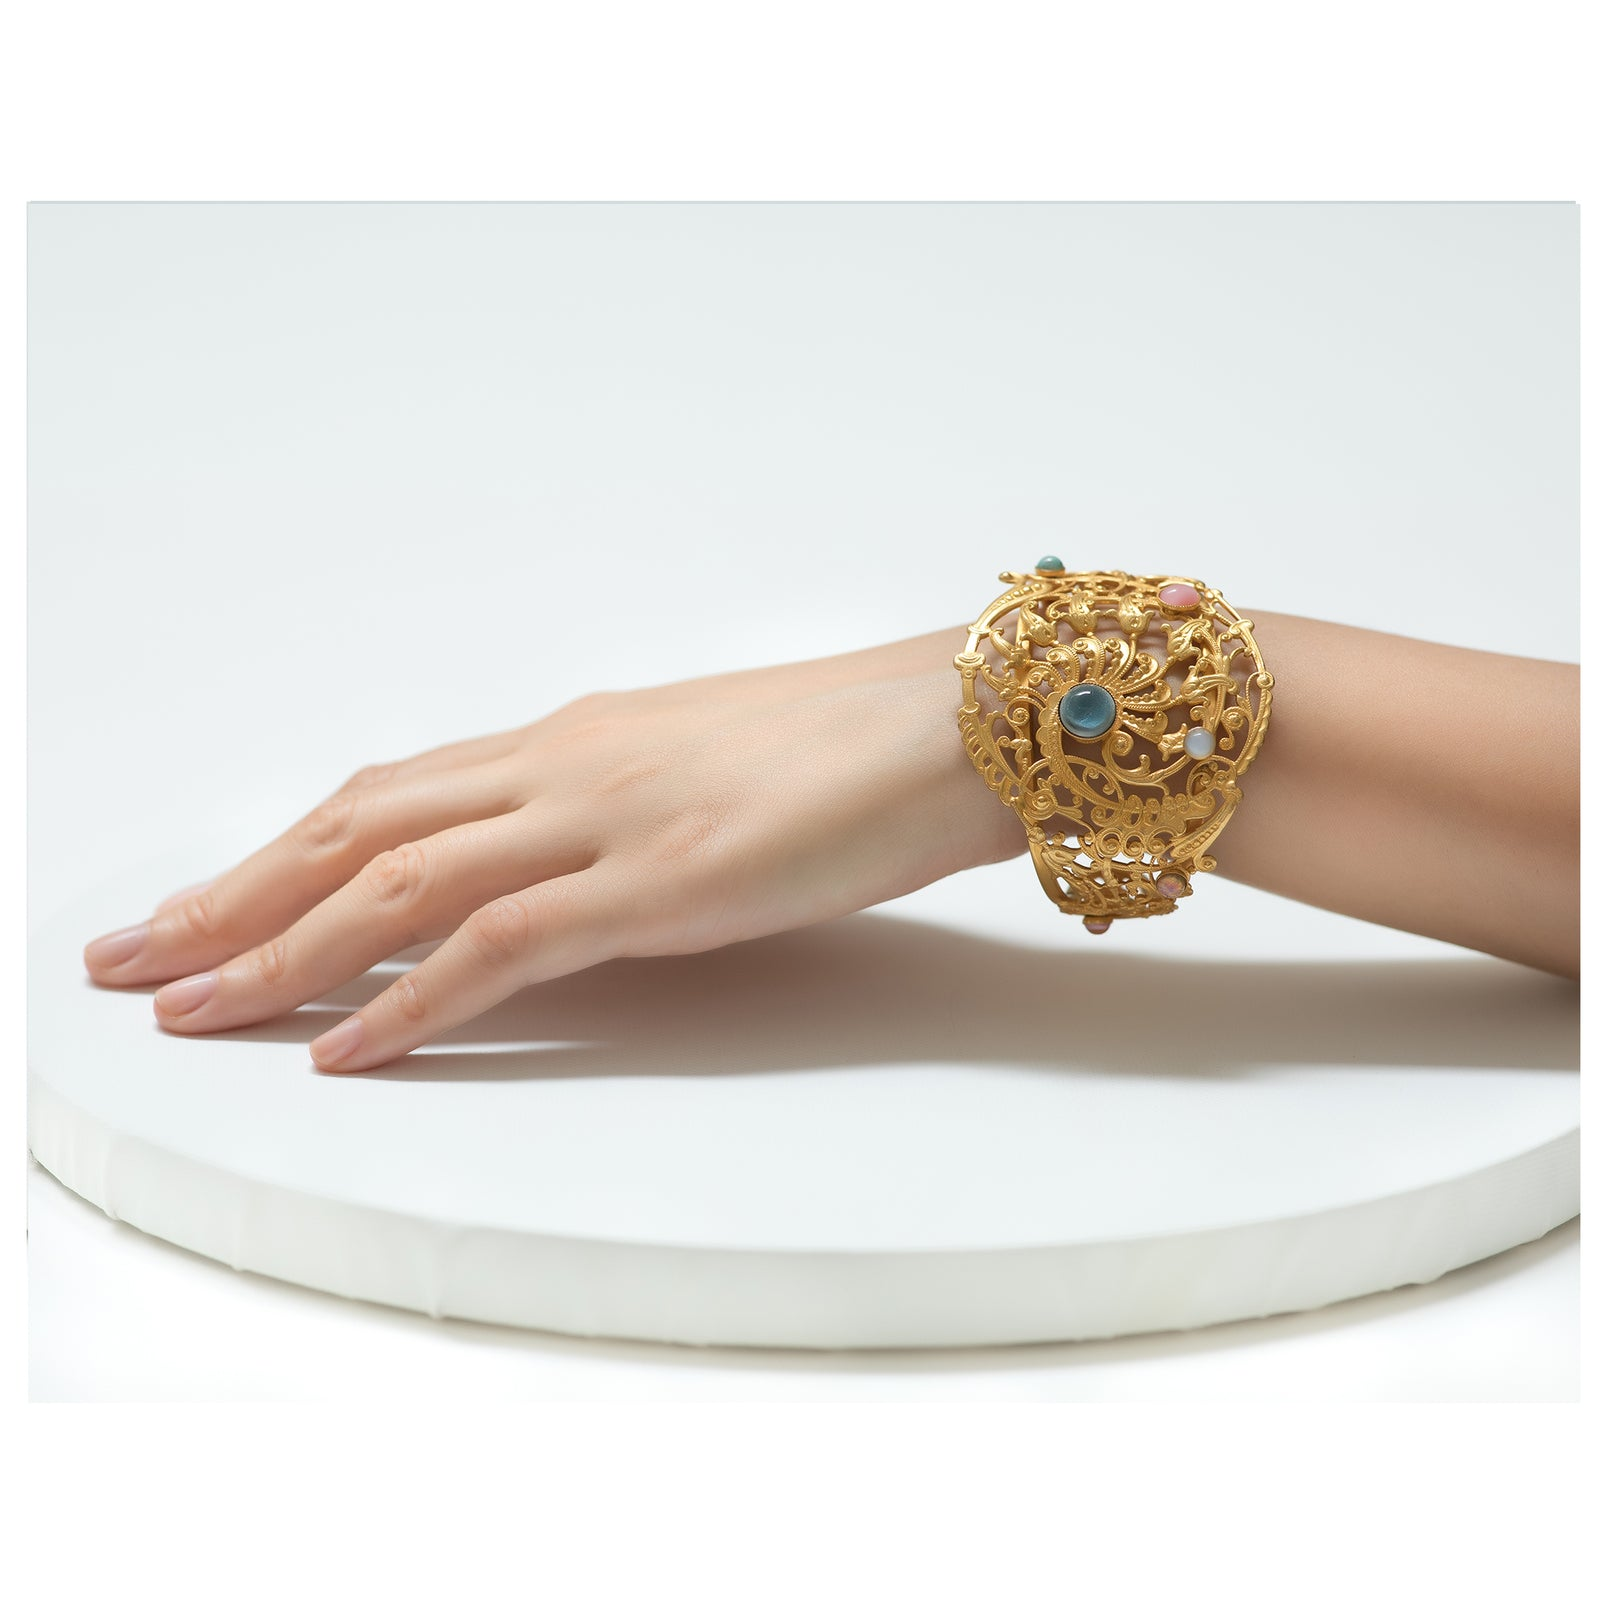 OLYMPE Bracelet Gold-Plated